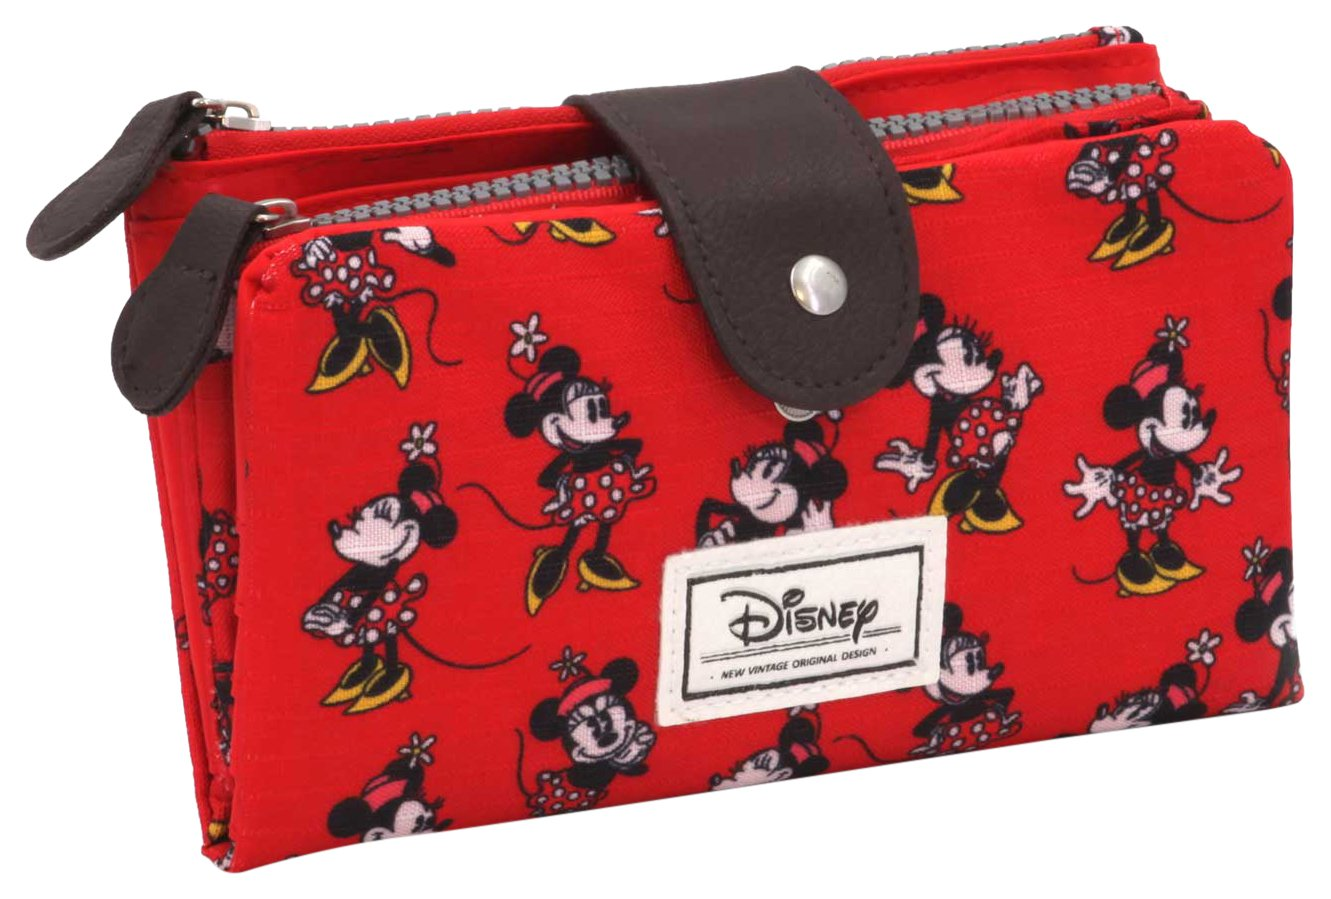 Disney Classic Minnie Cheerful Porte-Monnaie, 18 cm, Rouge (Rojo) Karactermania 36478